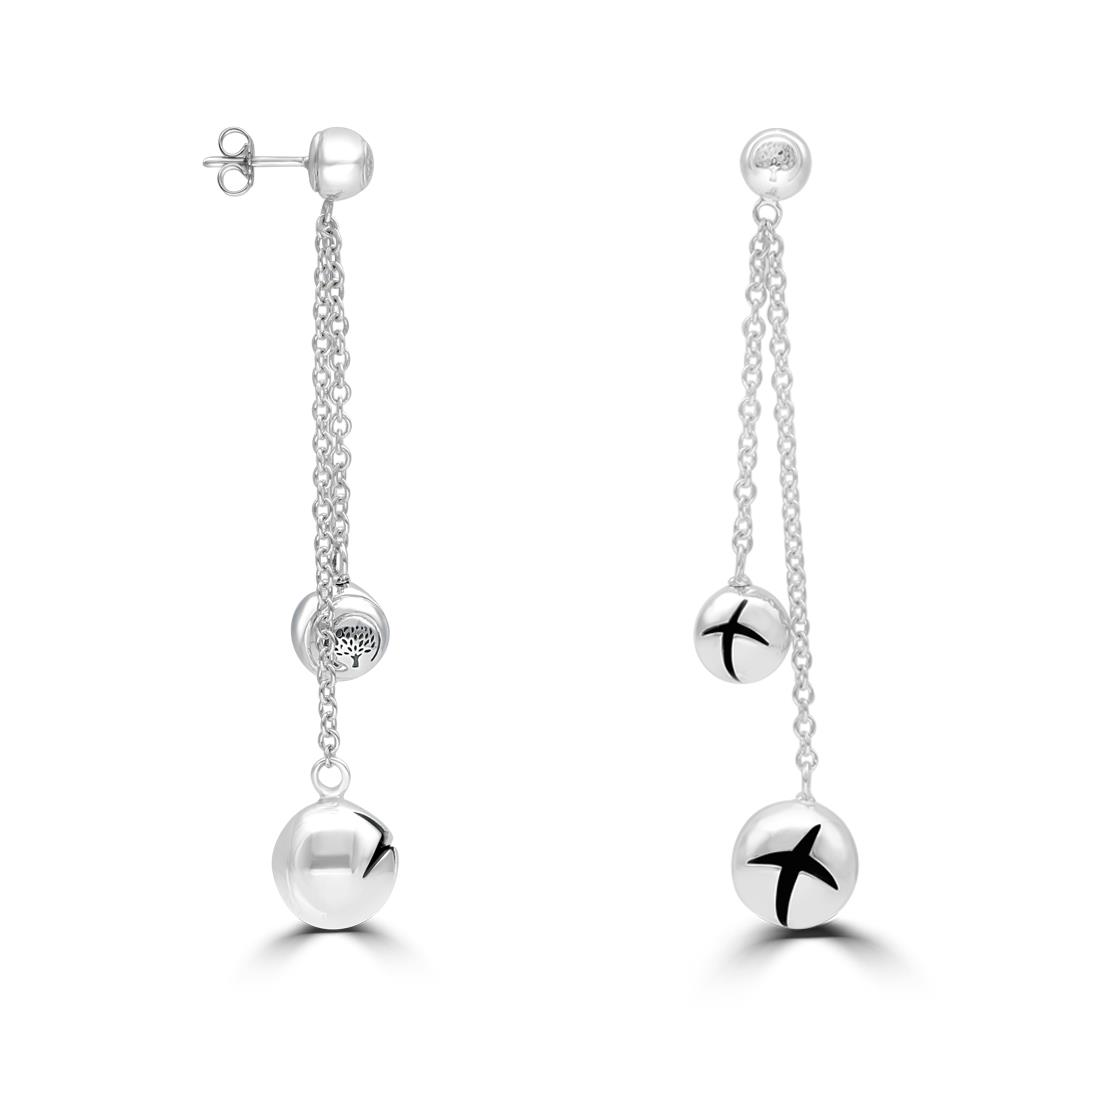 Sterling silver pendant earrings with  spheres and carved crosses